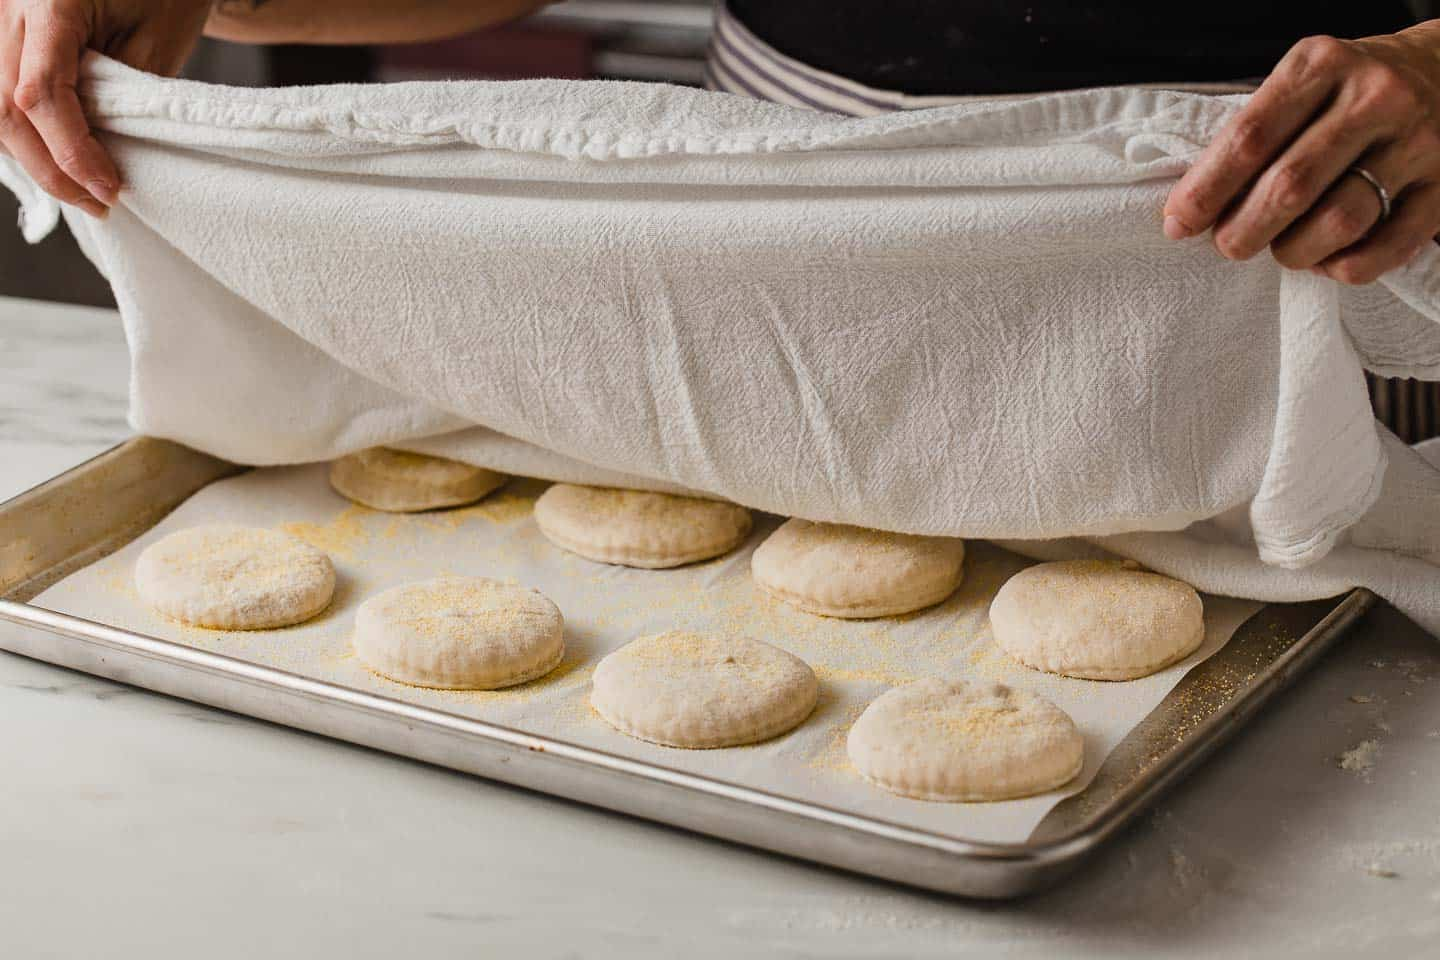 A woman covering sourdough english muffins with a tea towel.